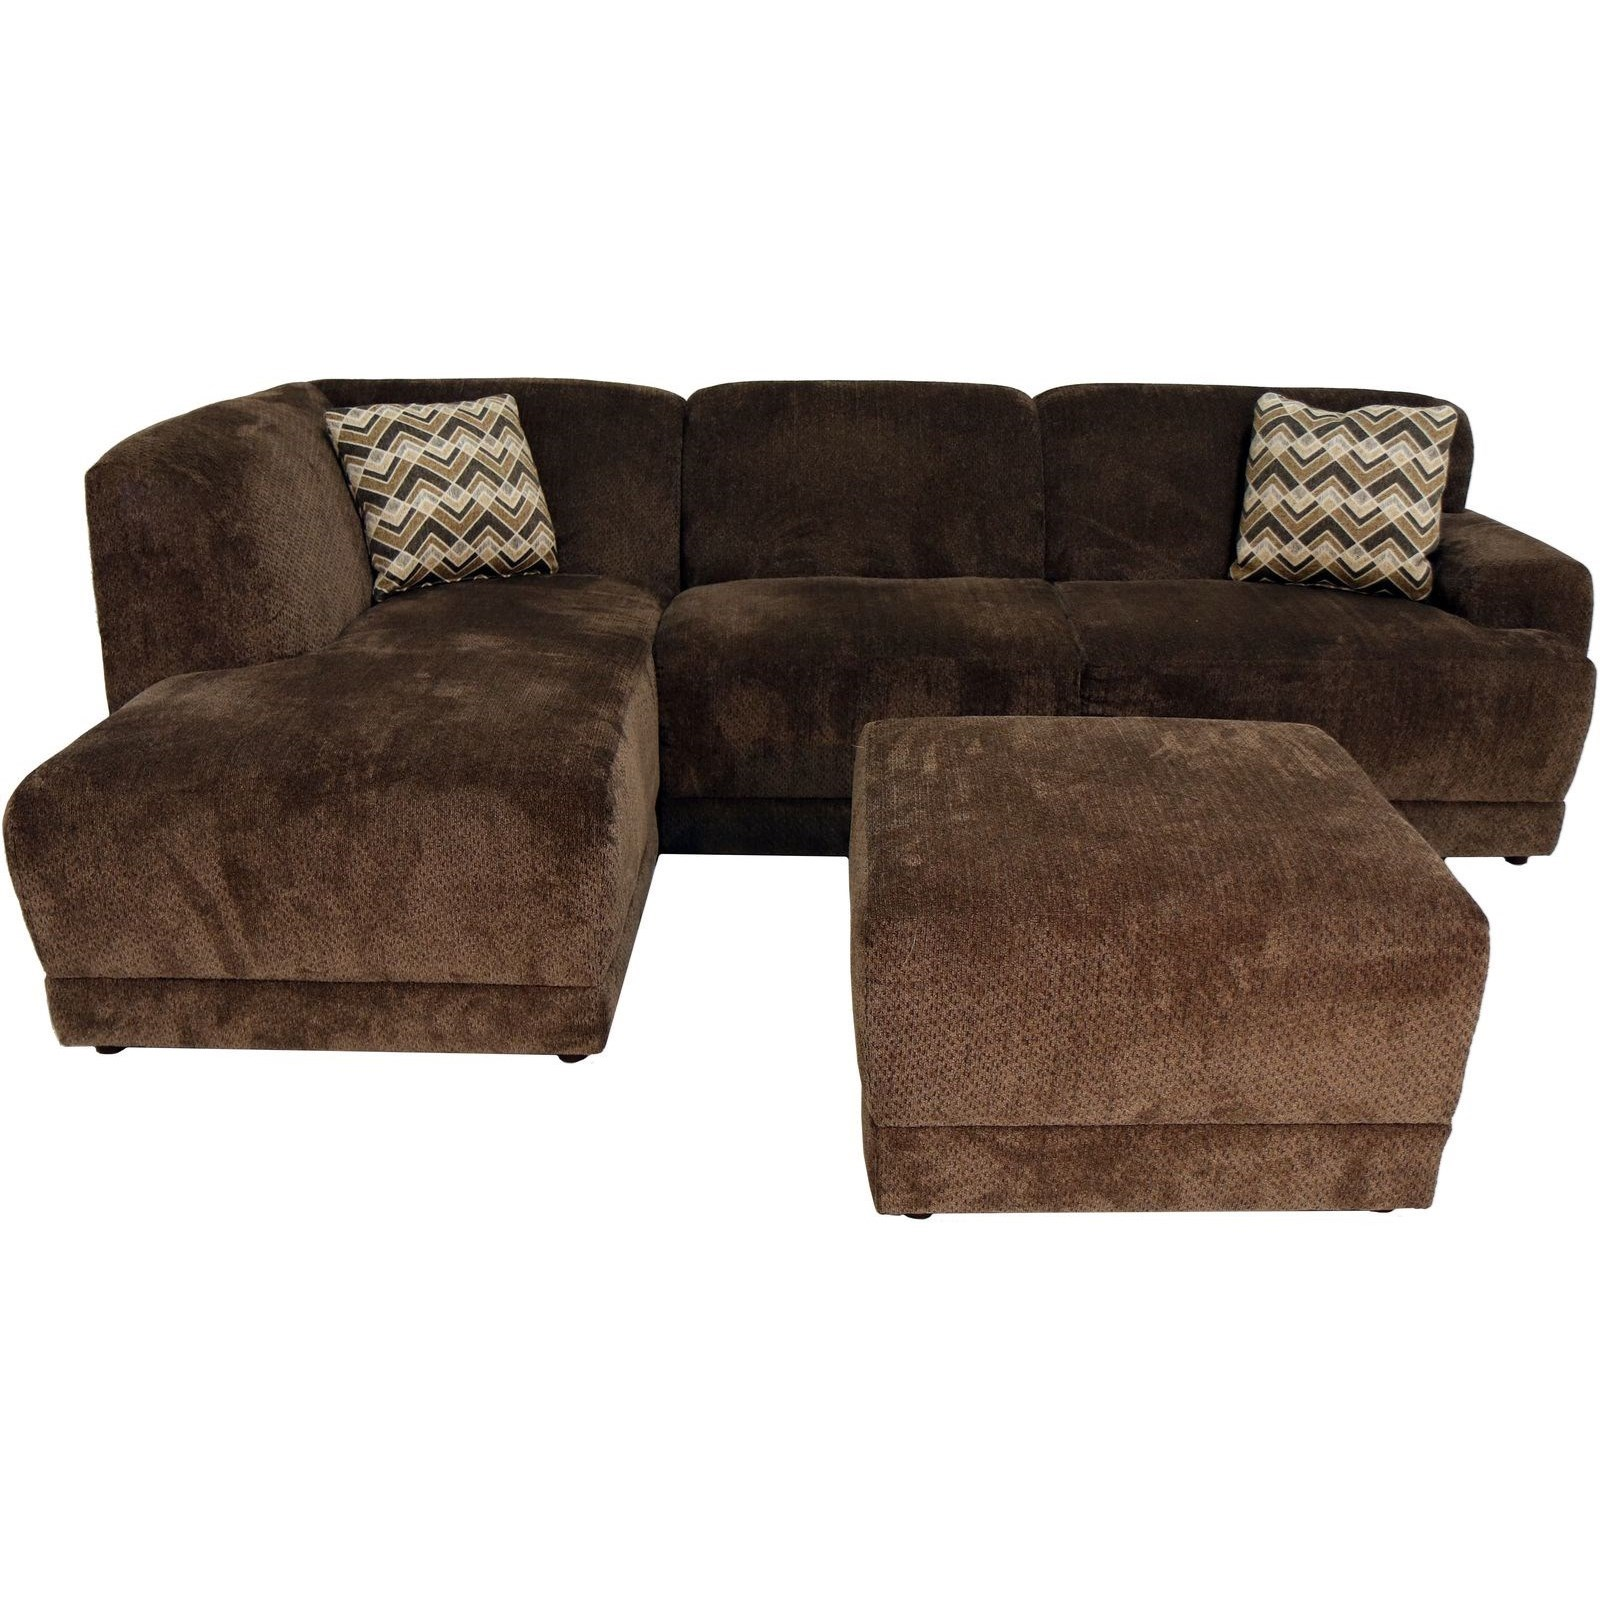 V280 Sectional Sofa by Alexvale at Northeast Factory Direct